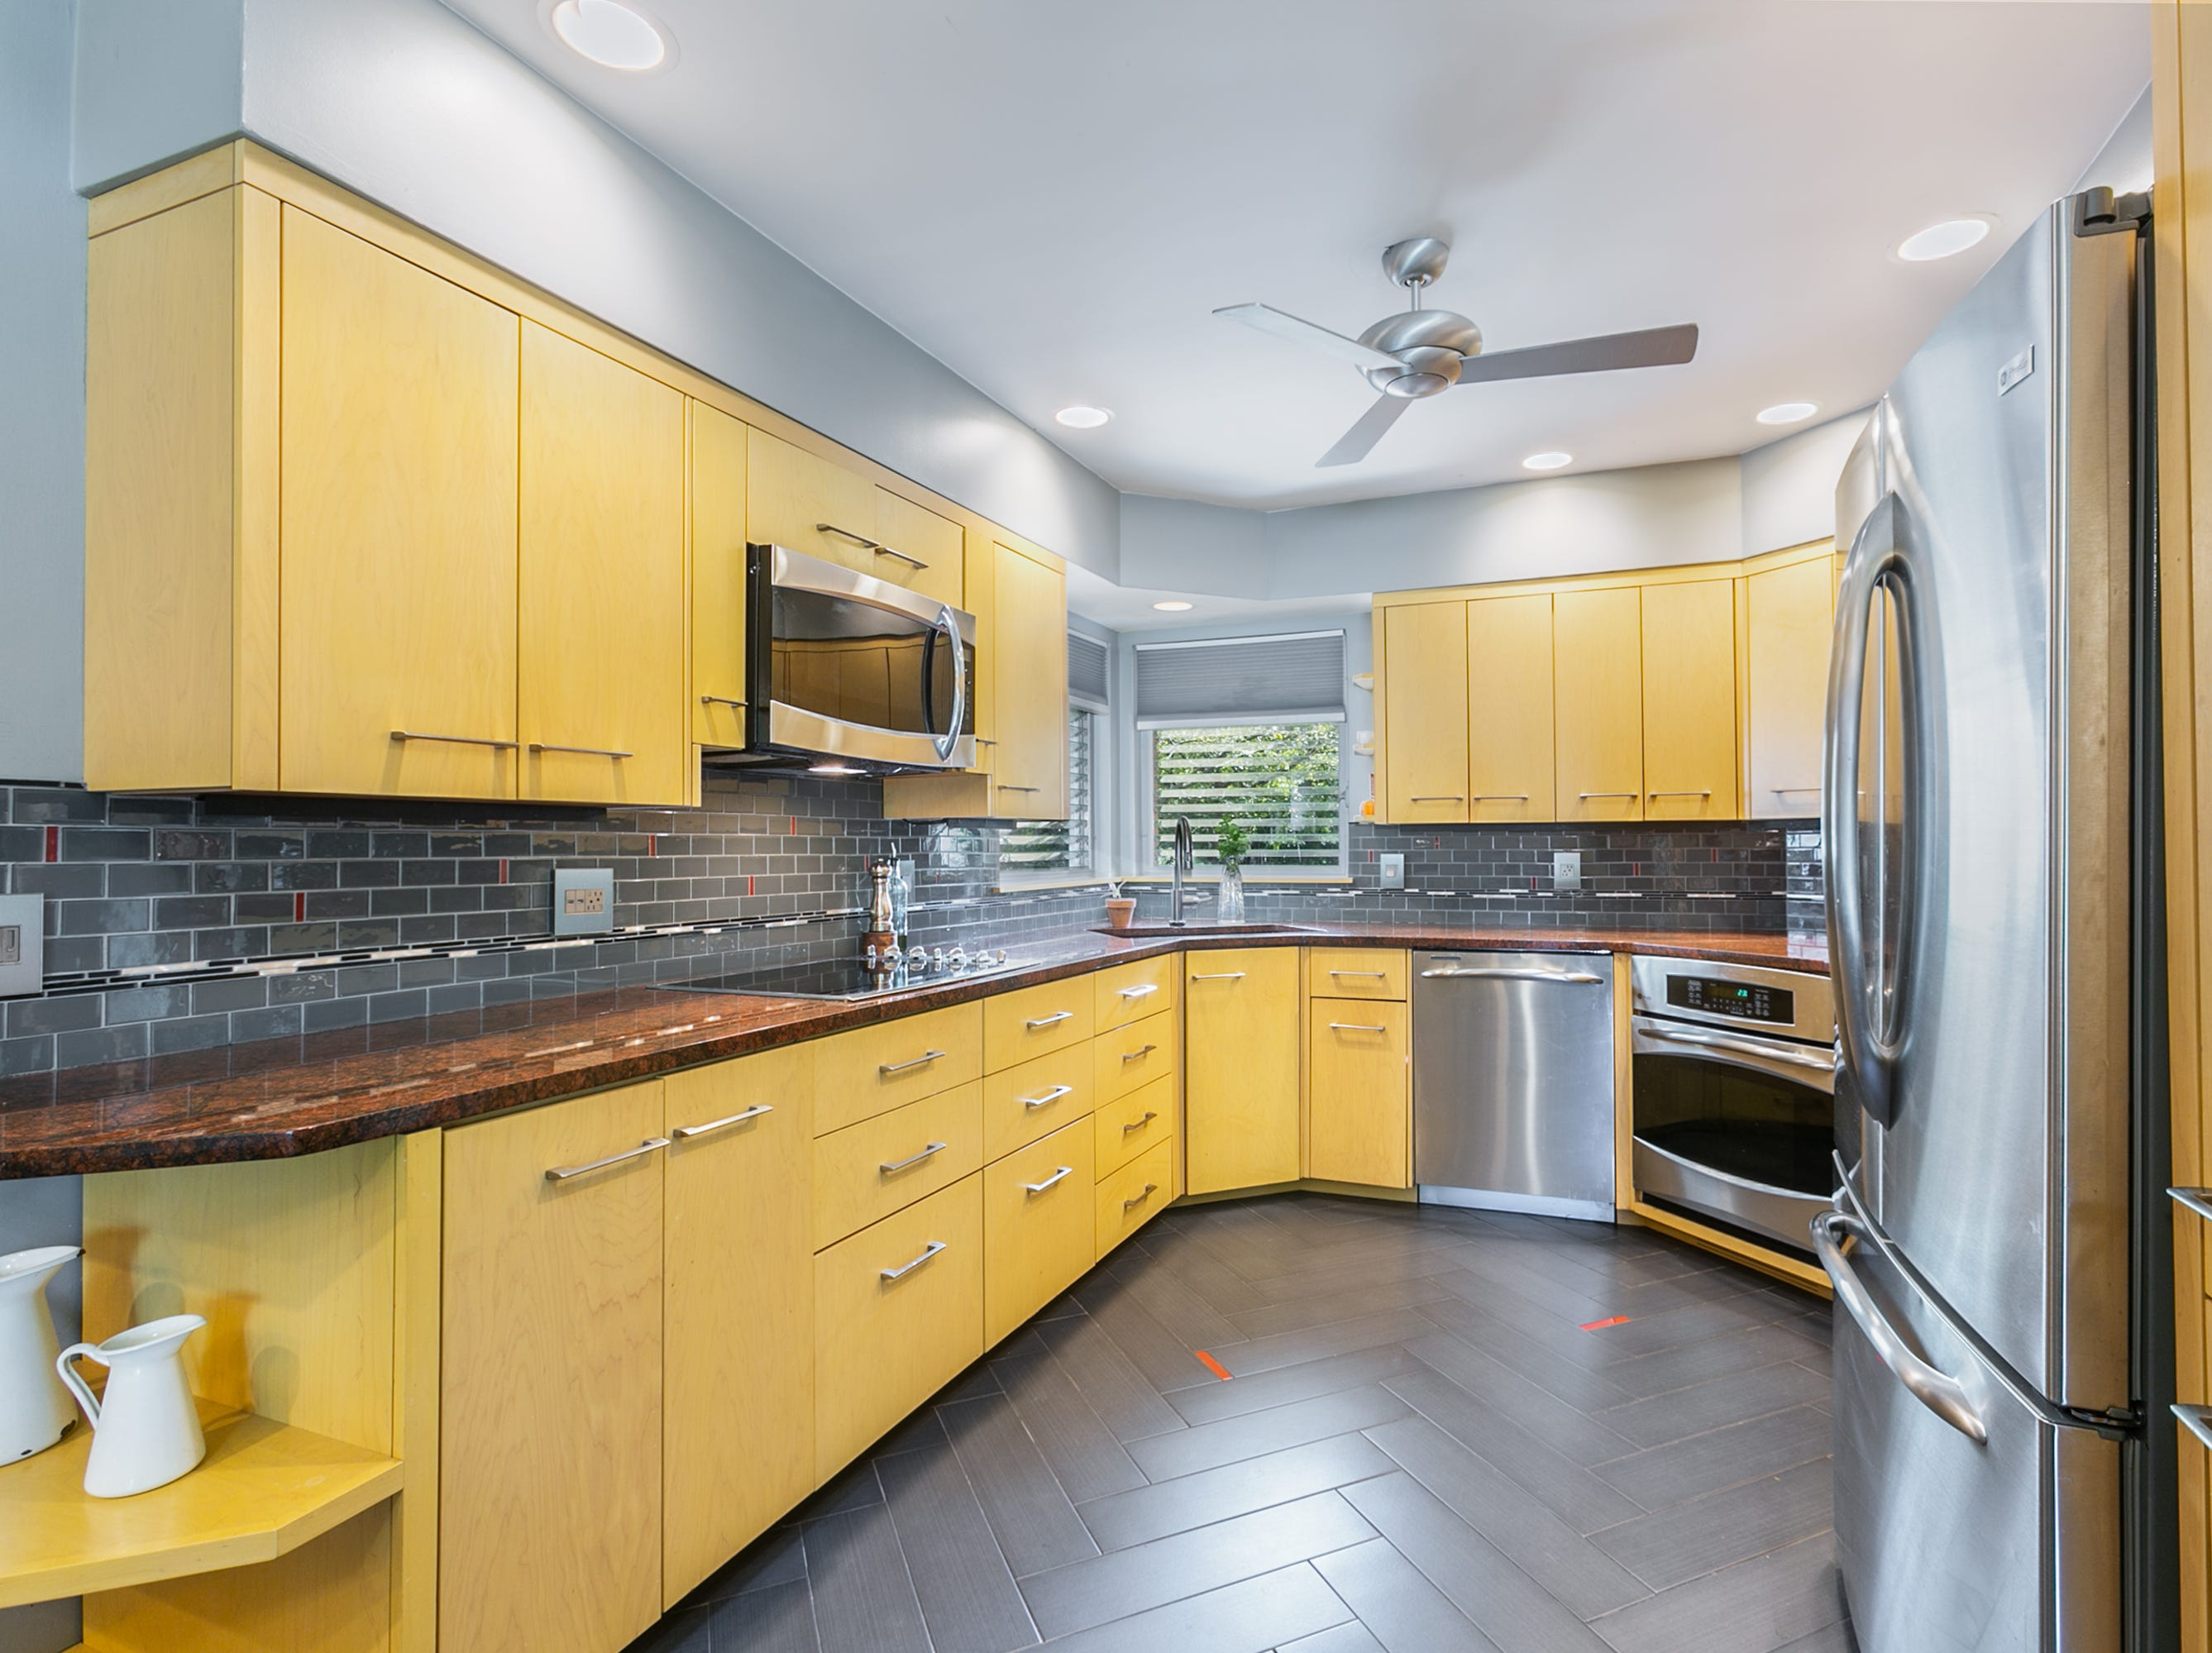 Keri and Aaron updated the kitchen with a new floor, backsplash, granite counter and appliances, but kept the charm of the yellow maple cabinets and corner window.